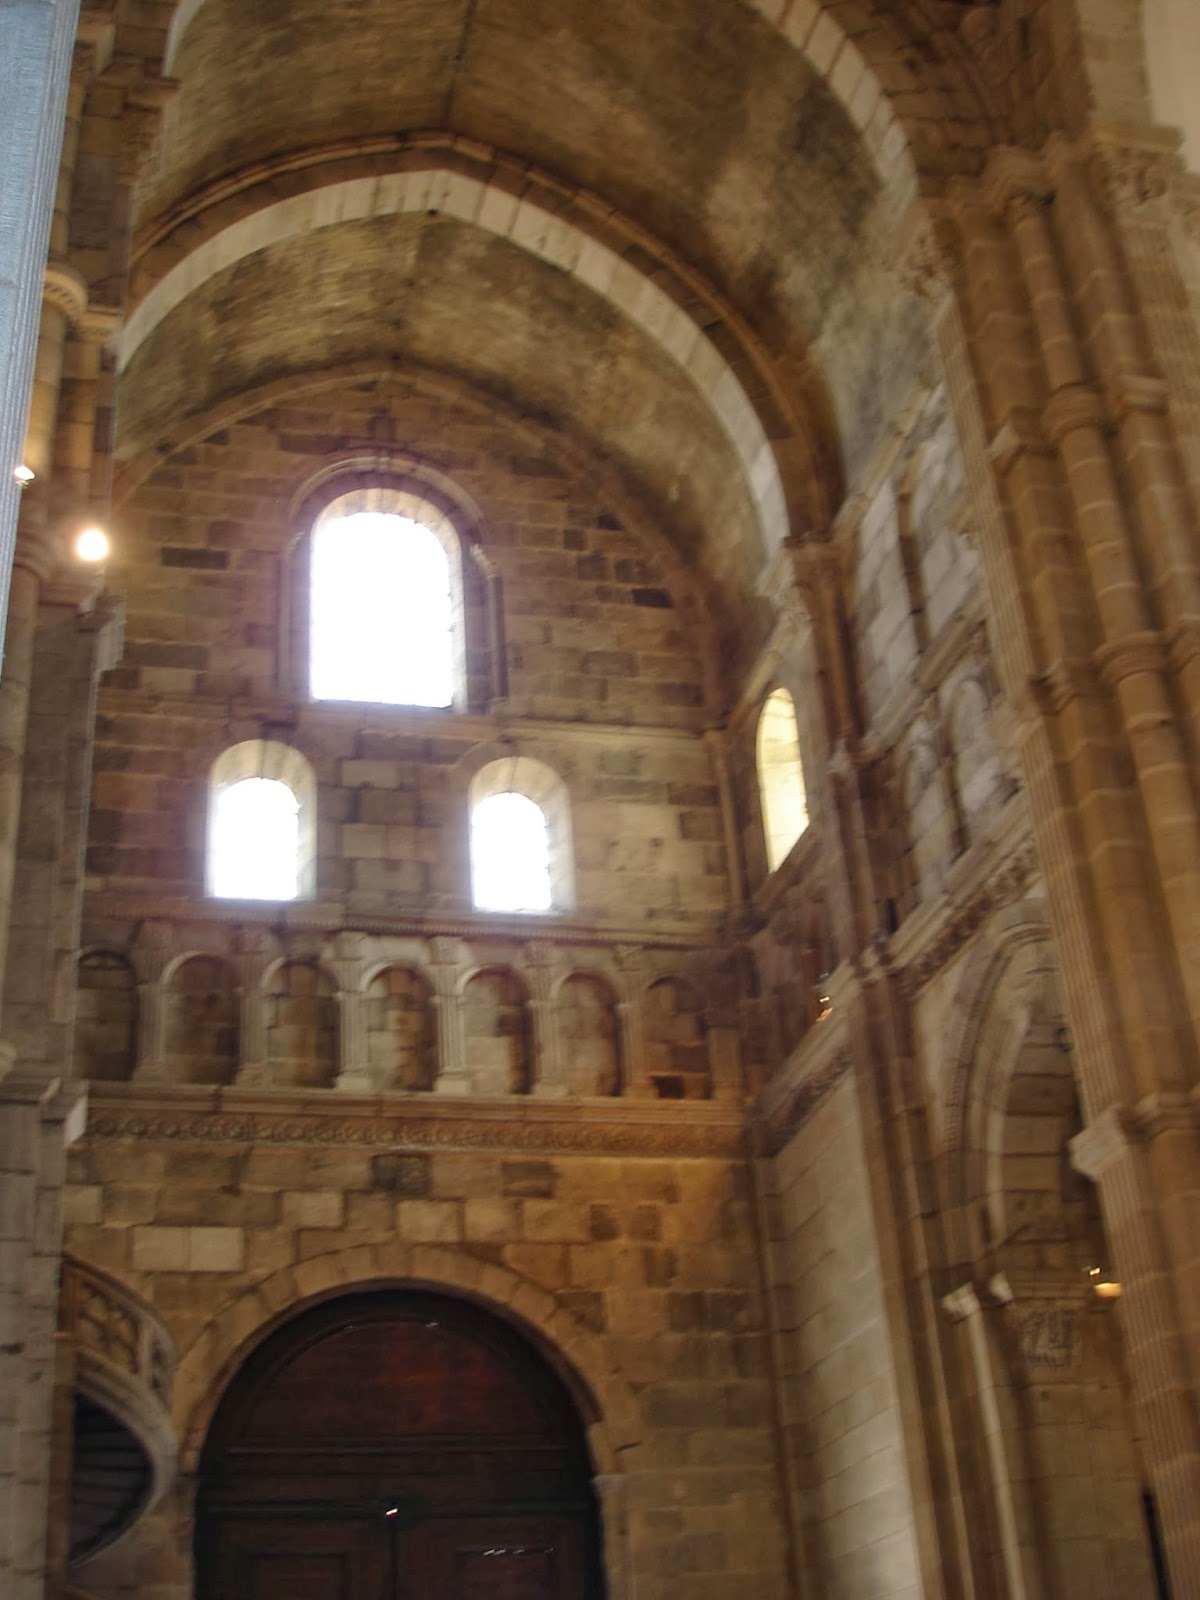 Artventures: Roman Arches, Vaults and Romanesque Churches